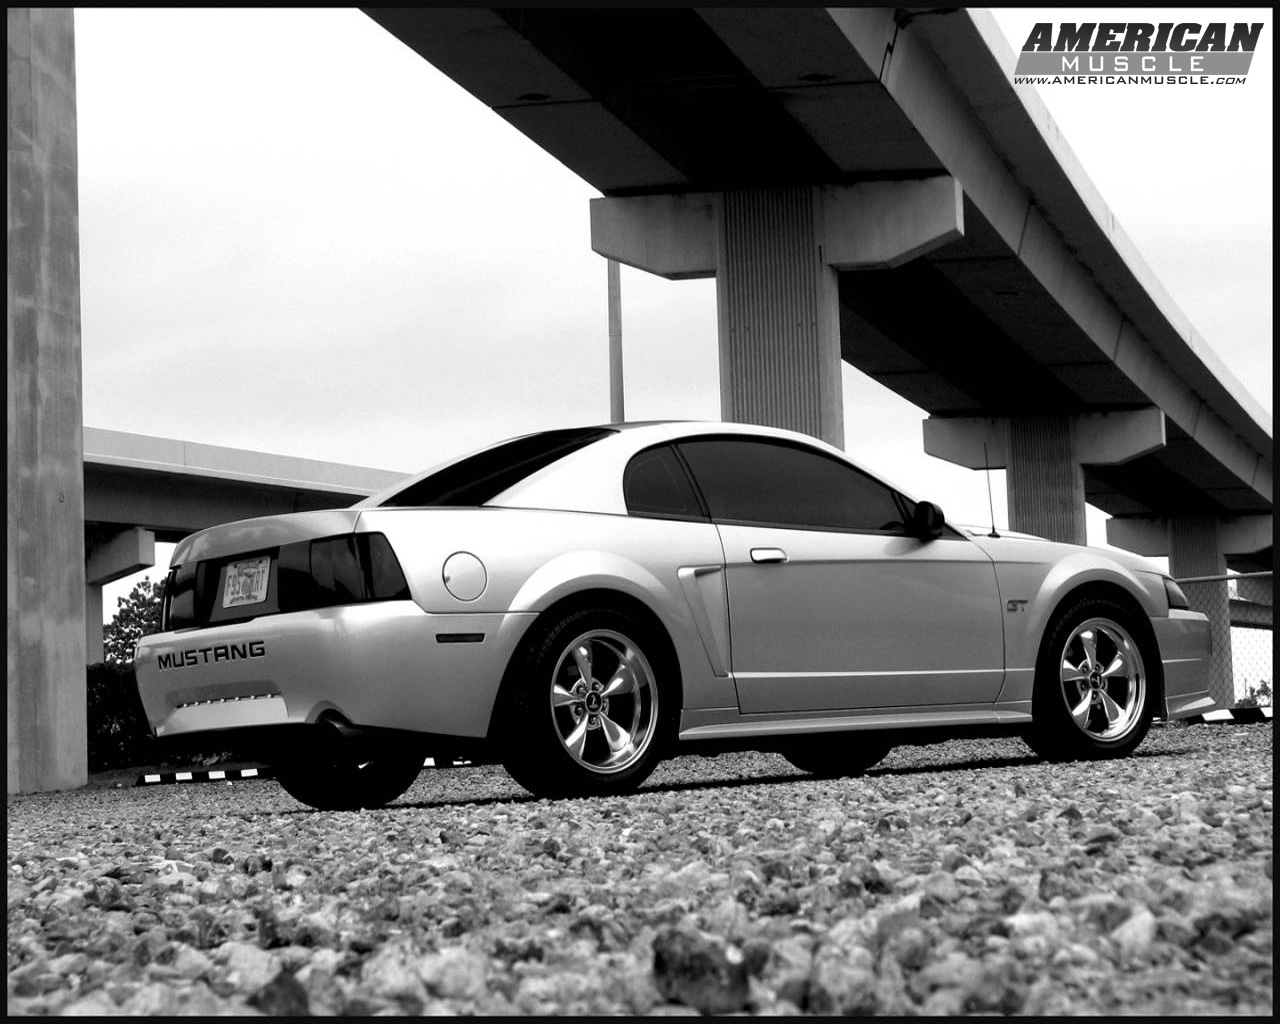 American Muscle Cars Mustang Wallpaper Ford Mustang Wallpapers Amp Mustang Backgrounds